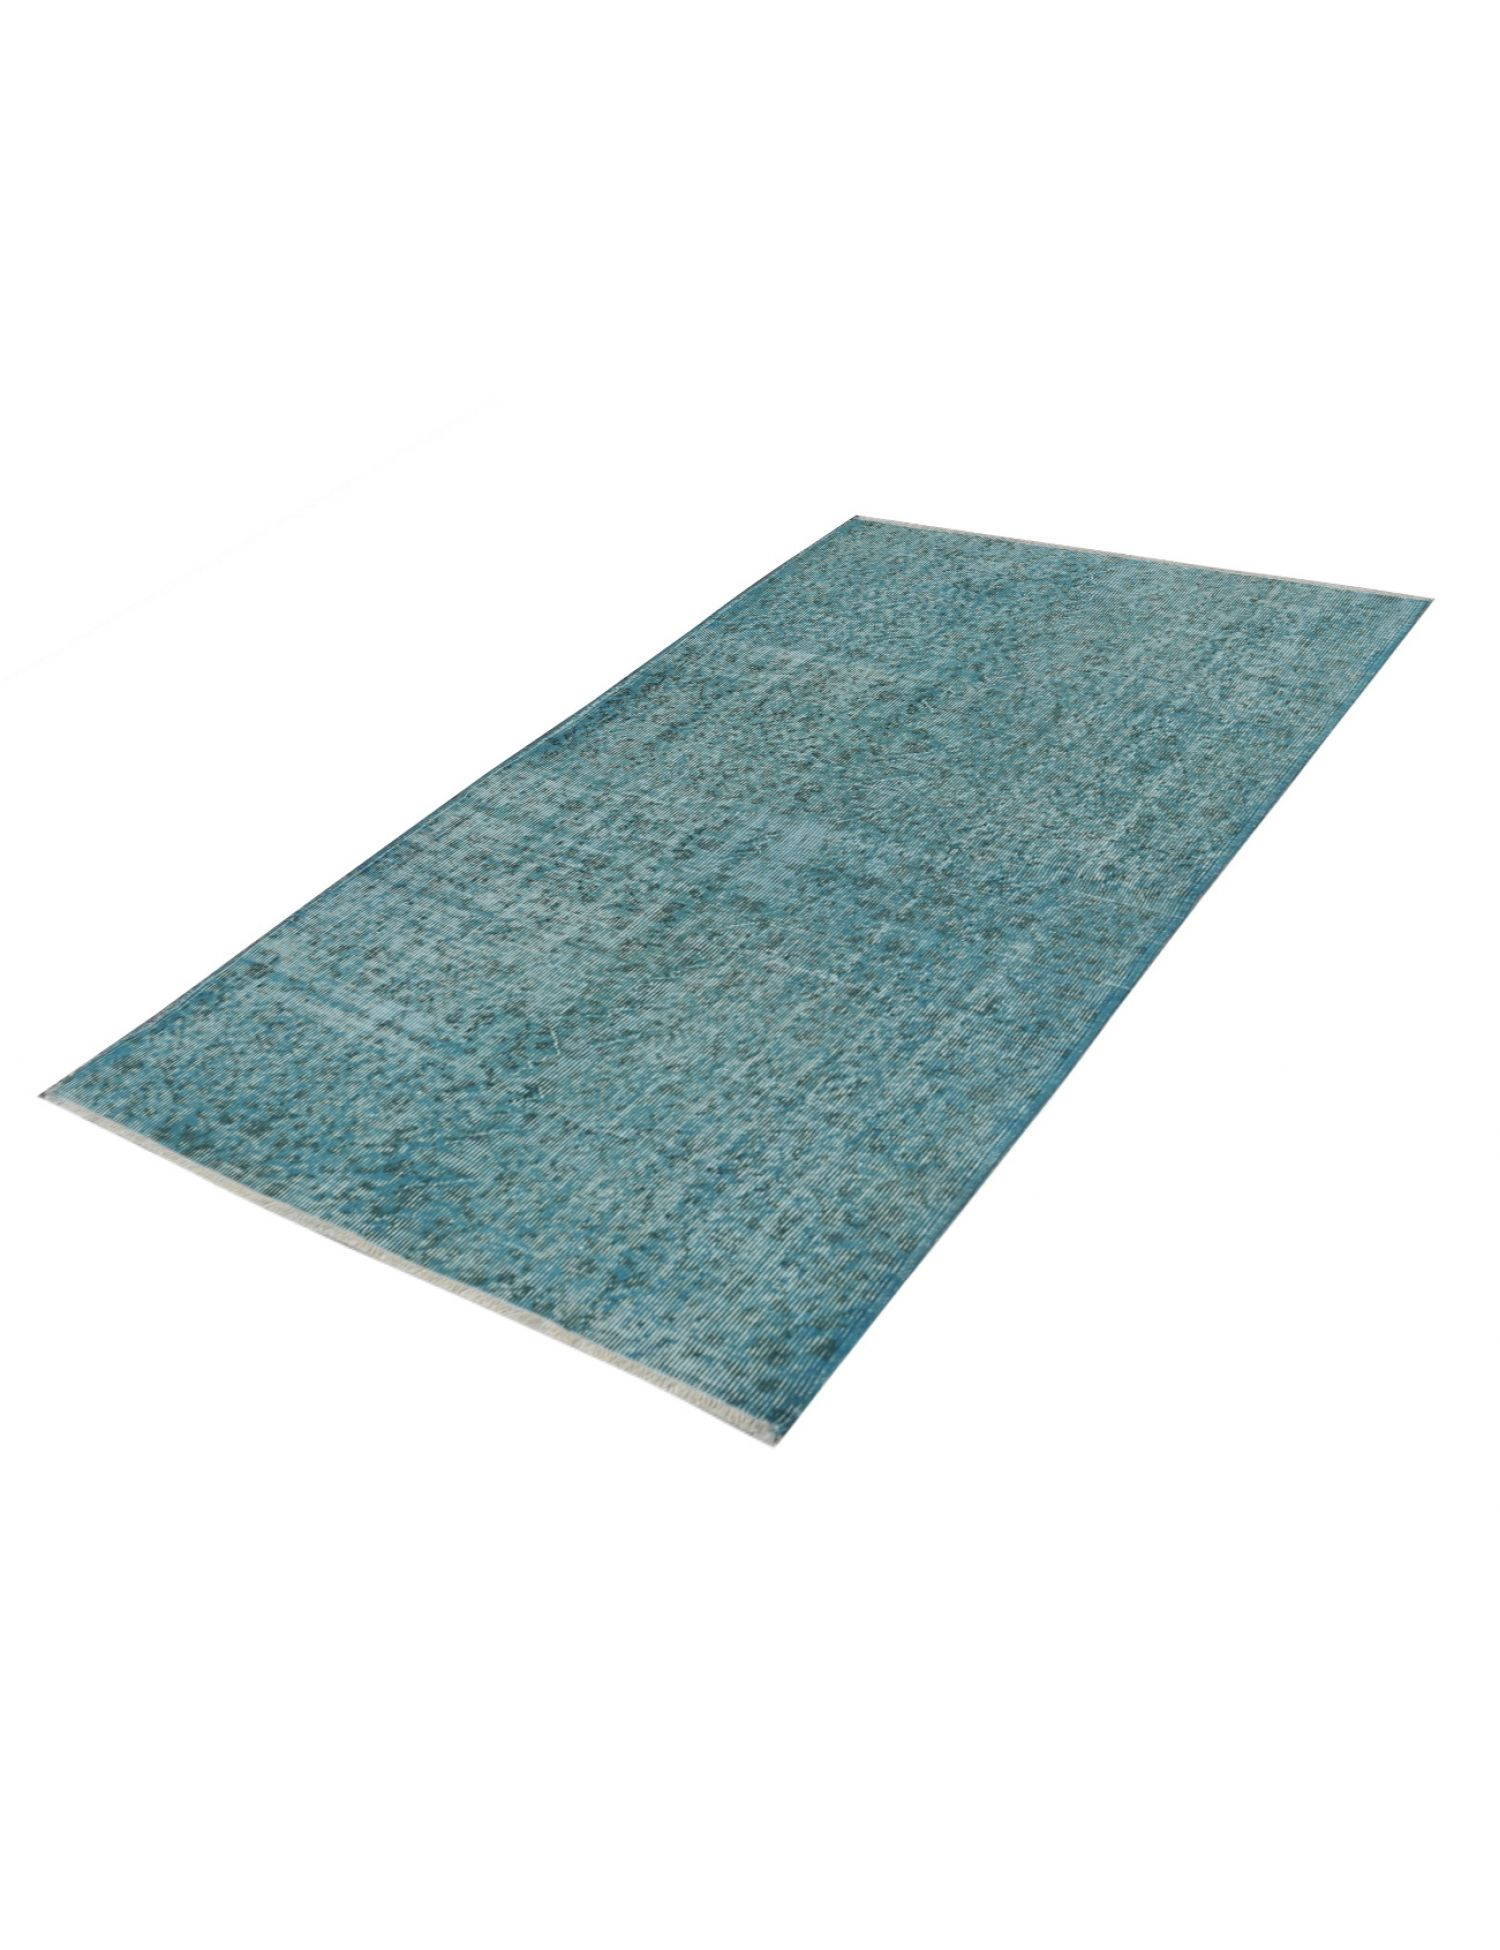 Vintage Carpet  blue <br/>189 x 100 cm